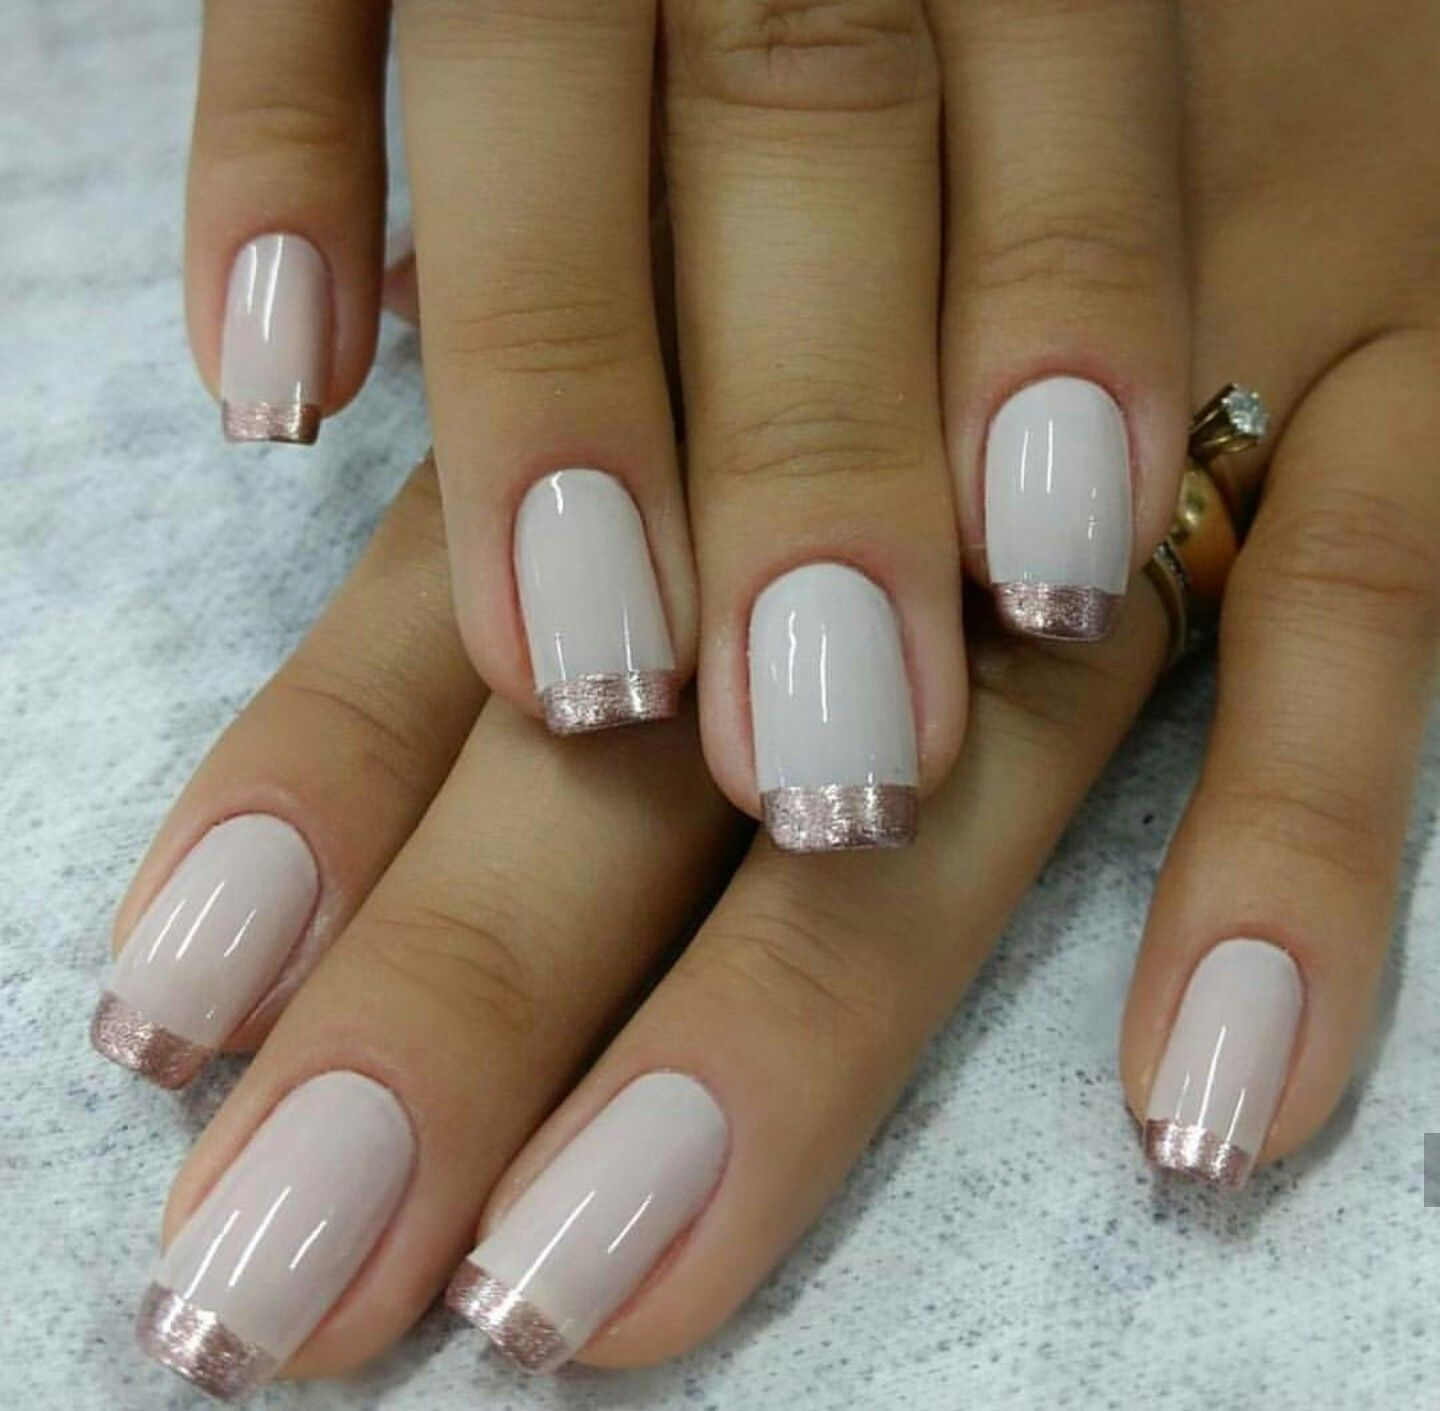 Pin By Dana On Nails Manicure French Nails Fun Nails